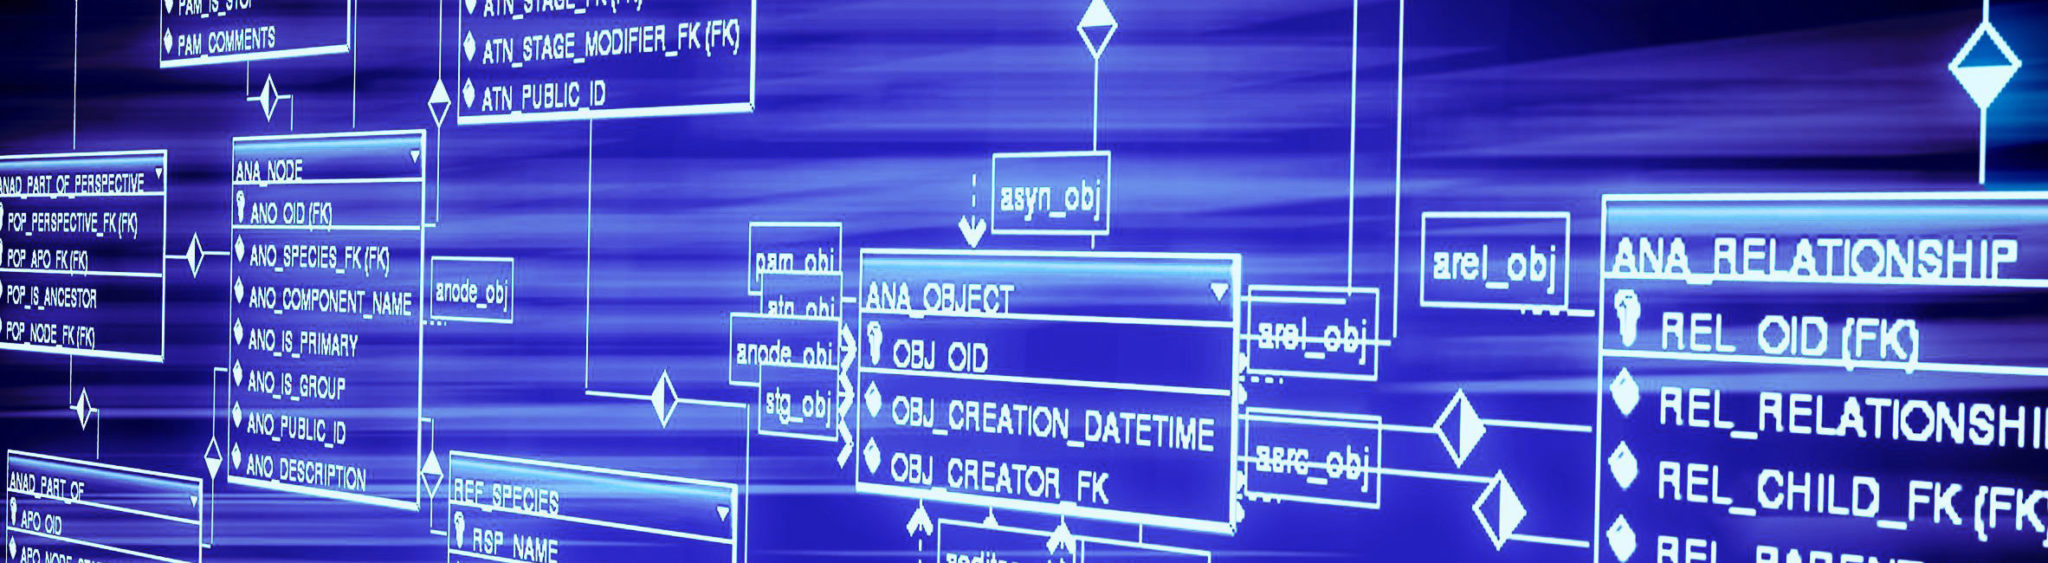 simulation for business process reengineering case study of a database management system